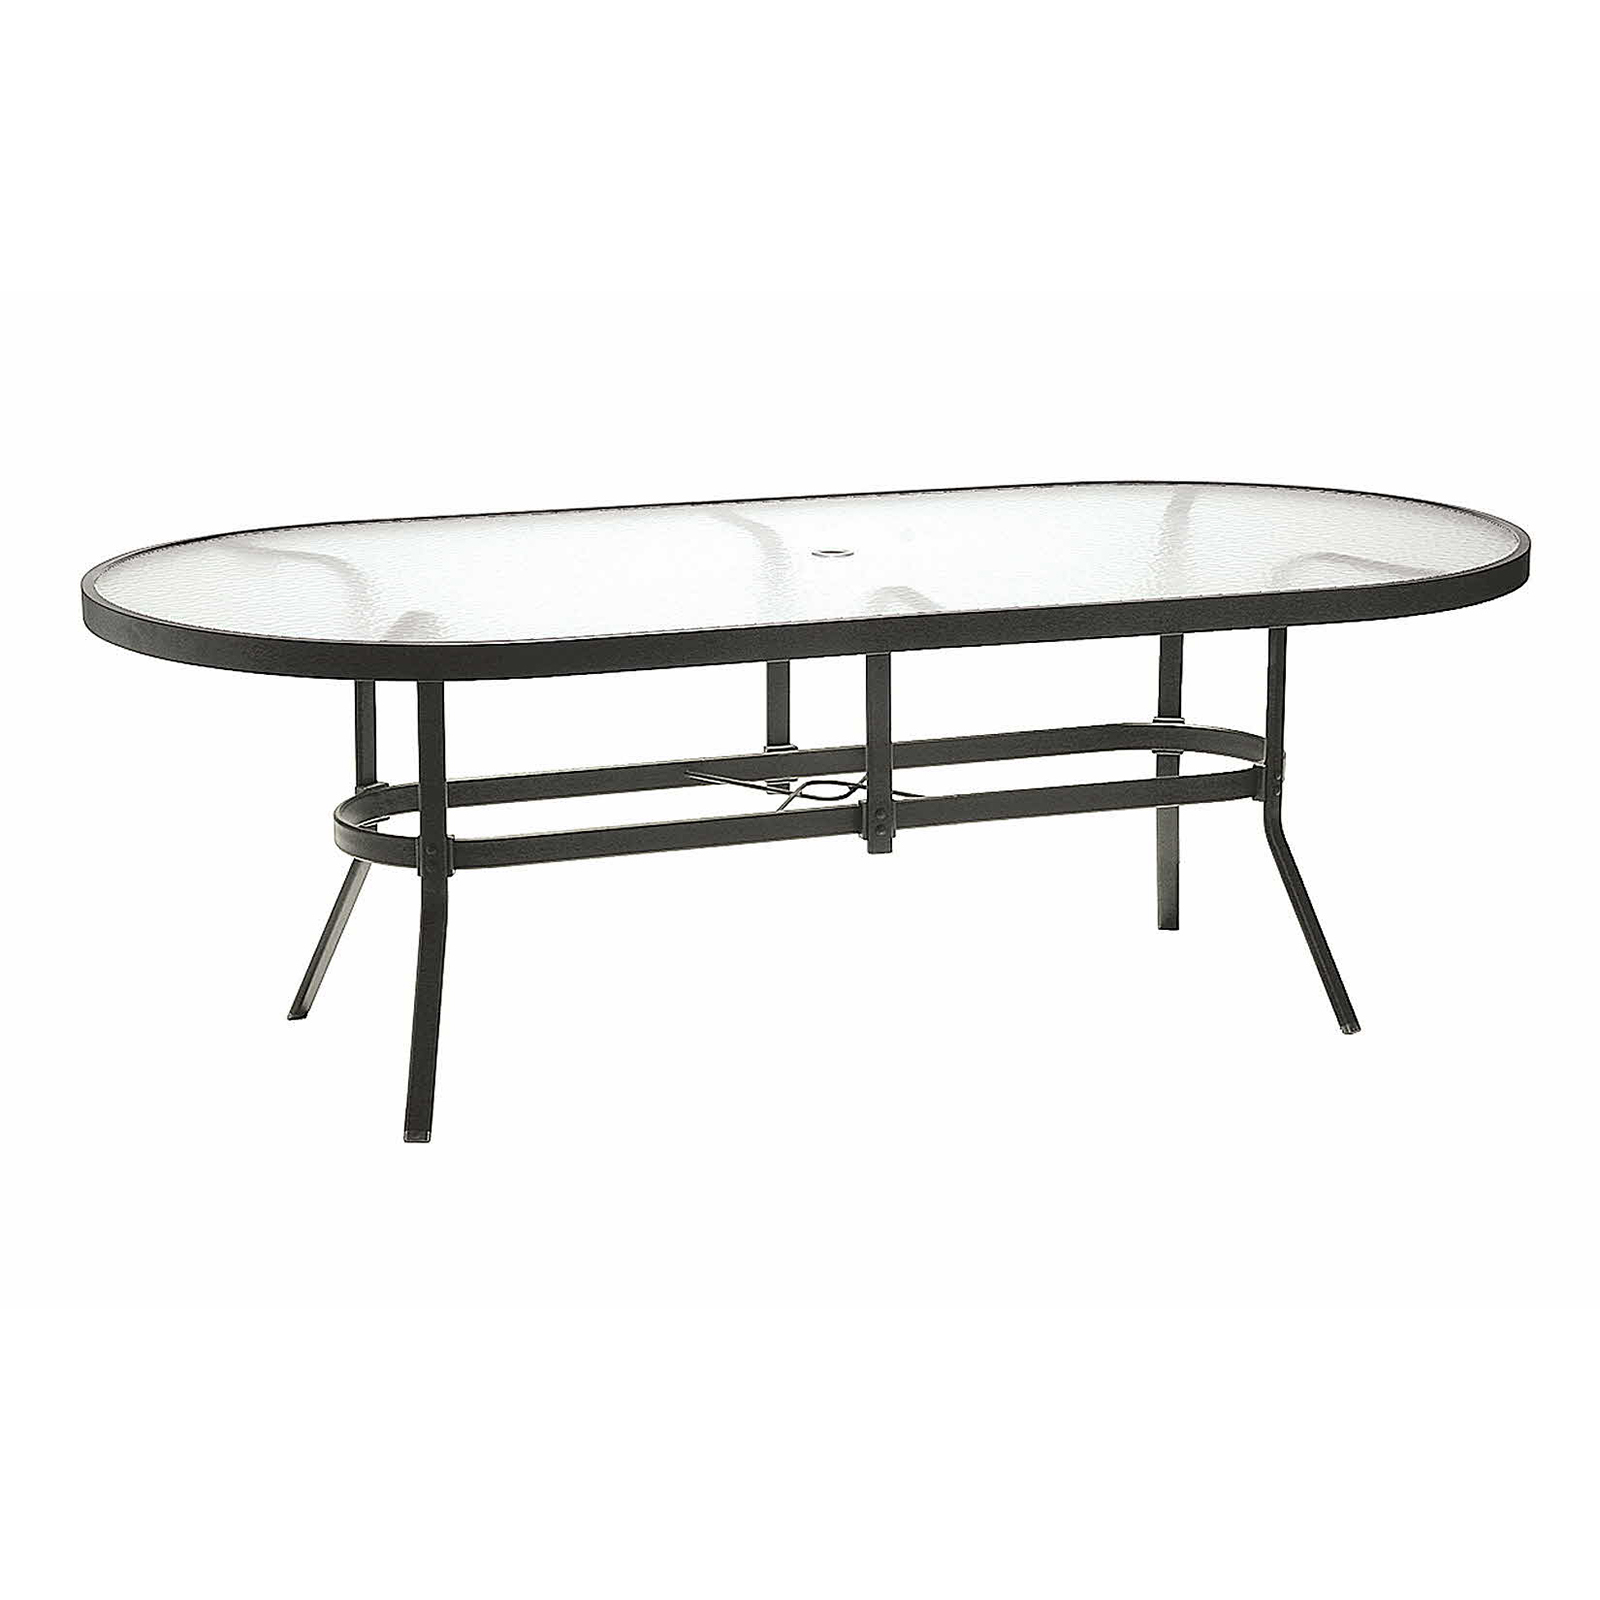 Winston 84 in Obscure Glass Top Oval Dining Table Patio